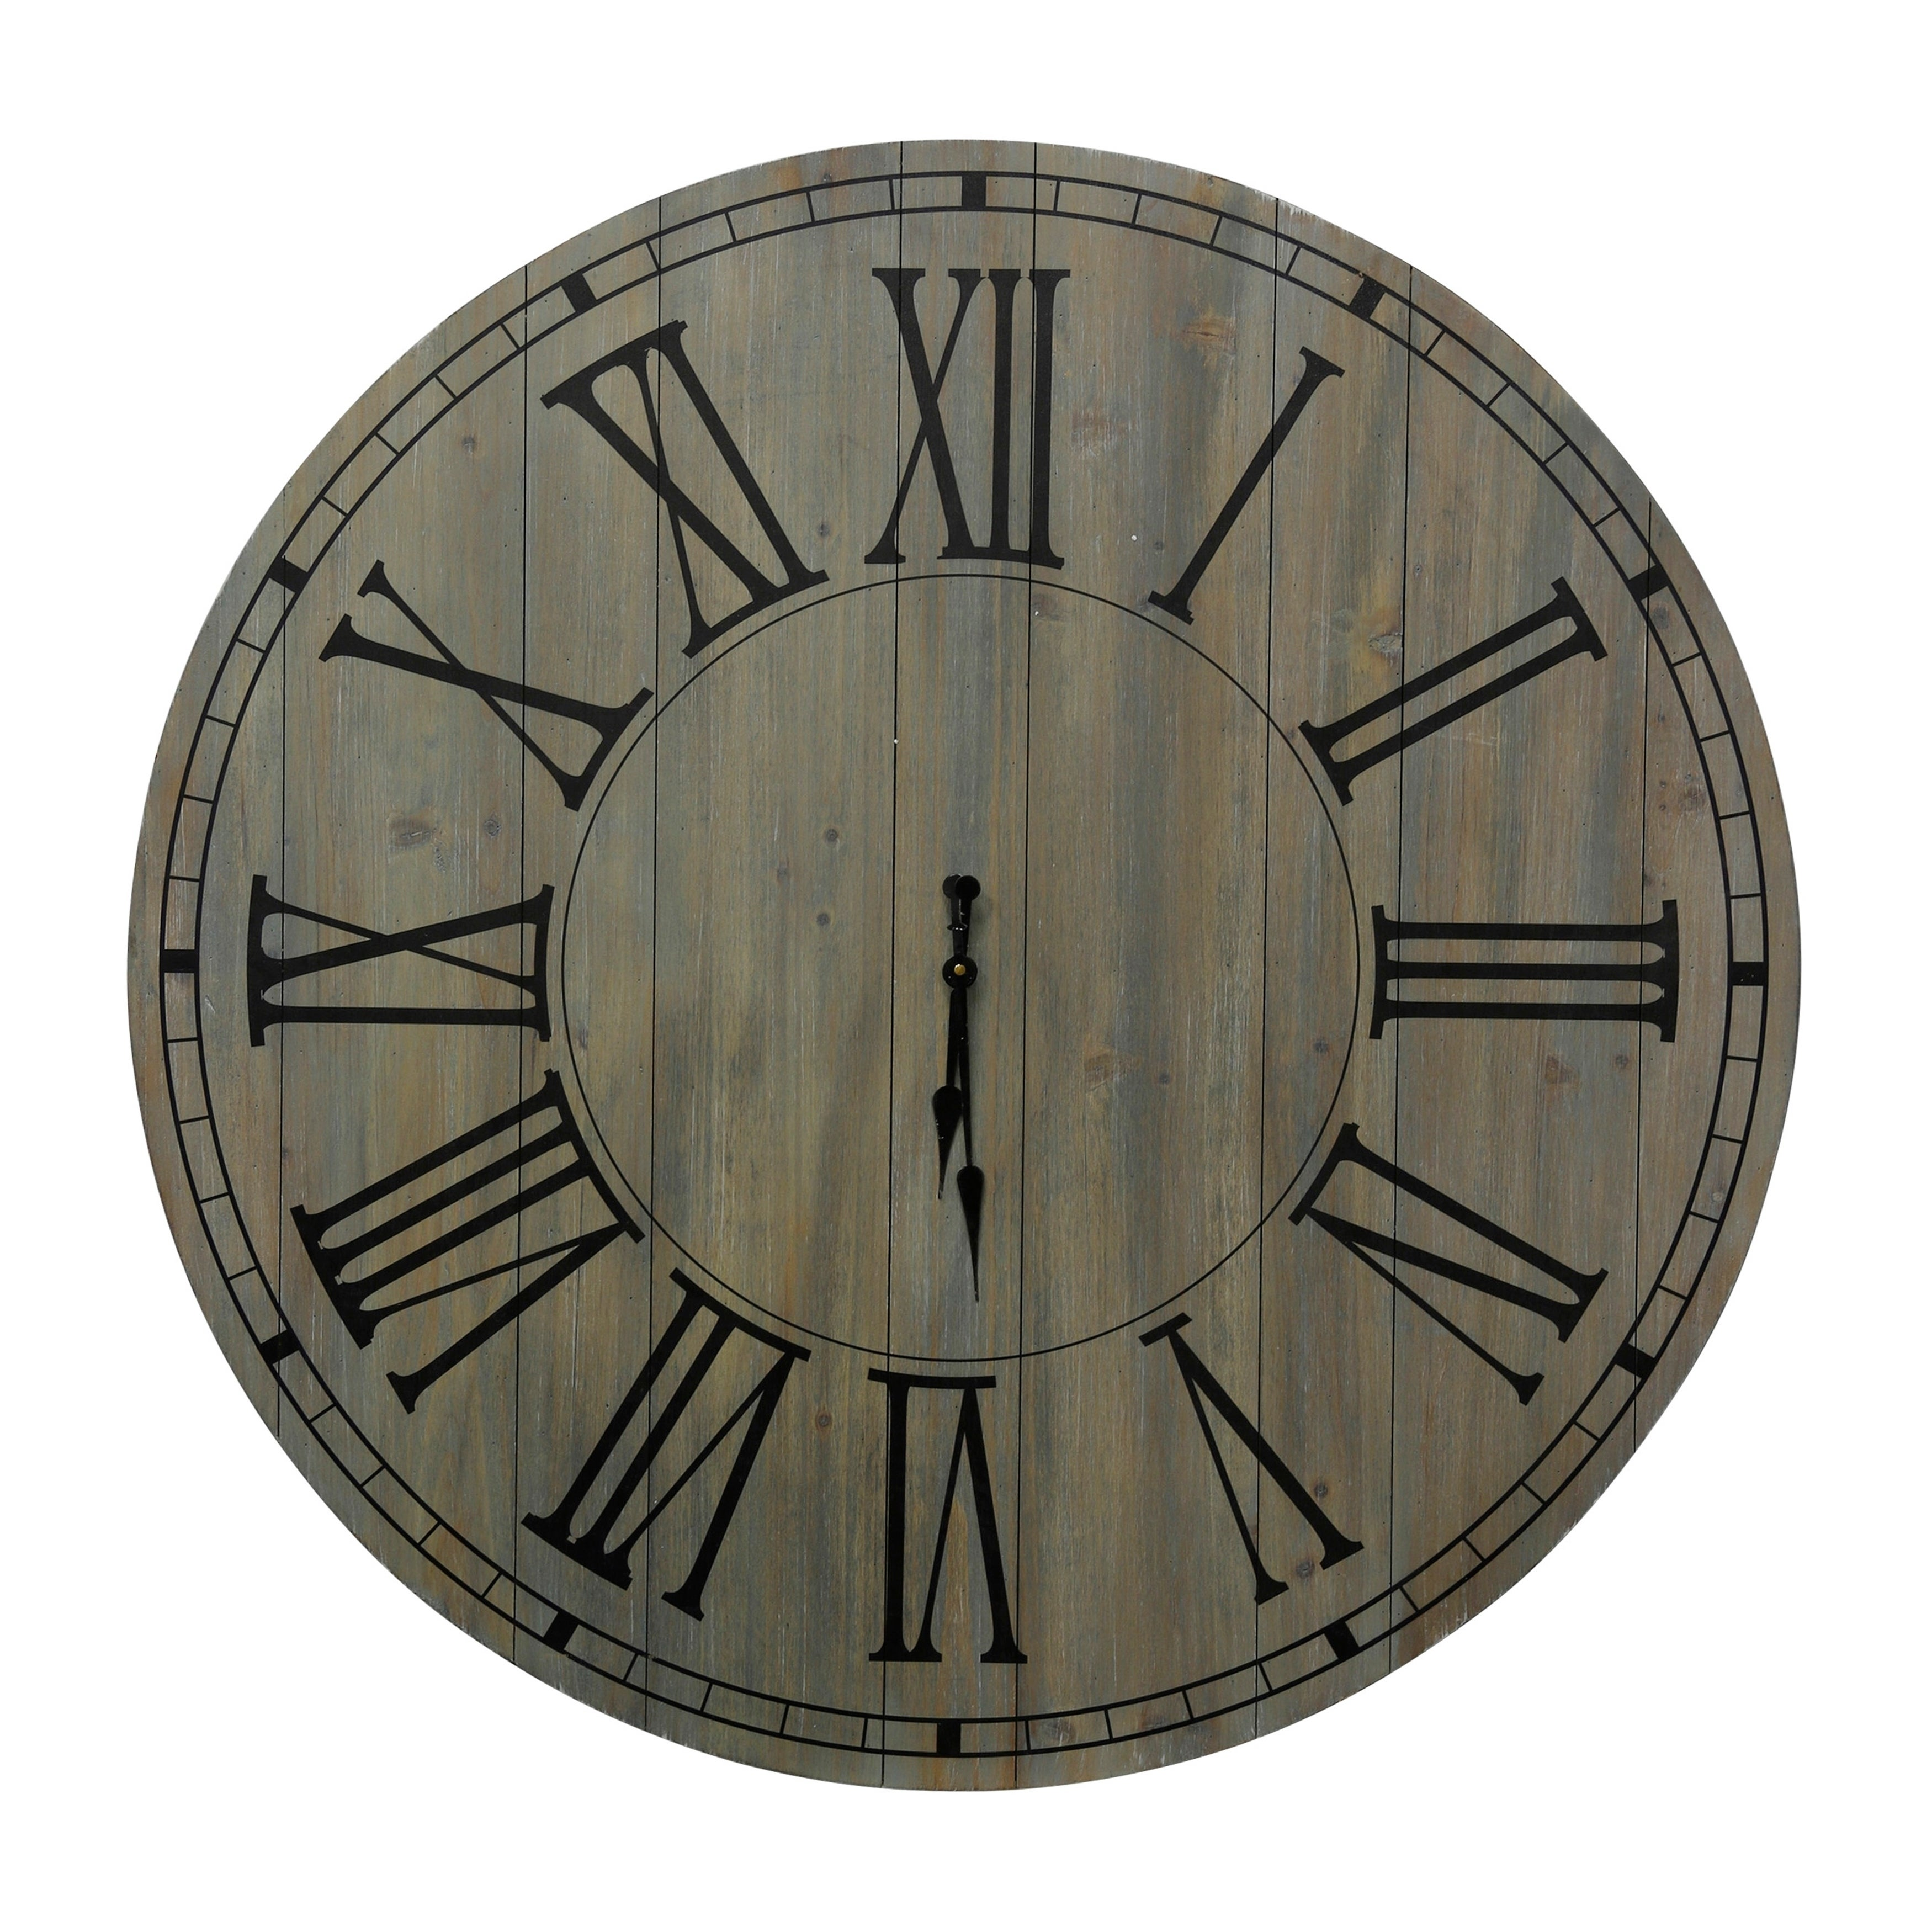 Natural Wood Round Wall Clock with Painted Panel, Roman Numerals and Minute Tick Markers